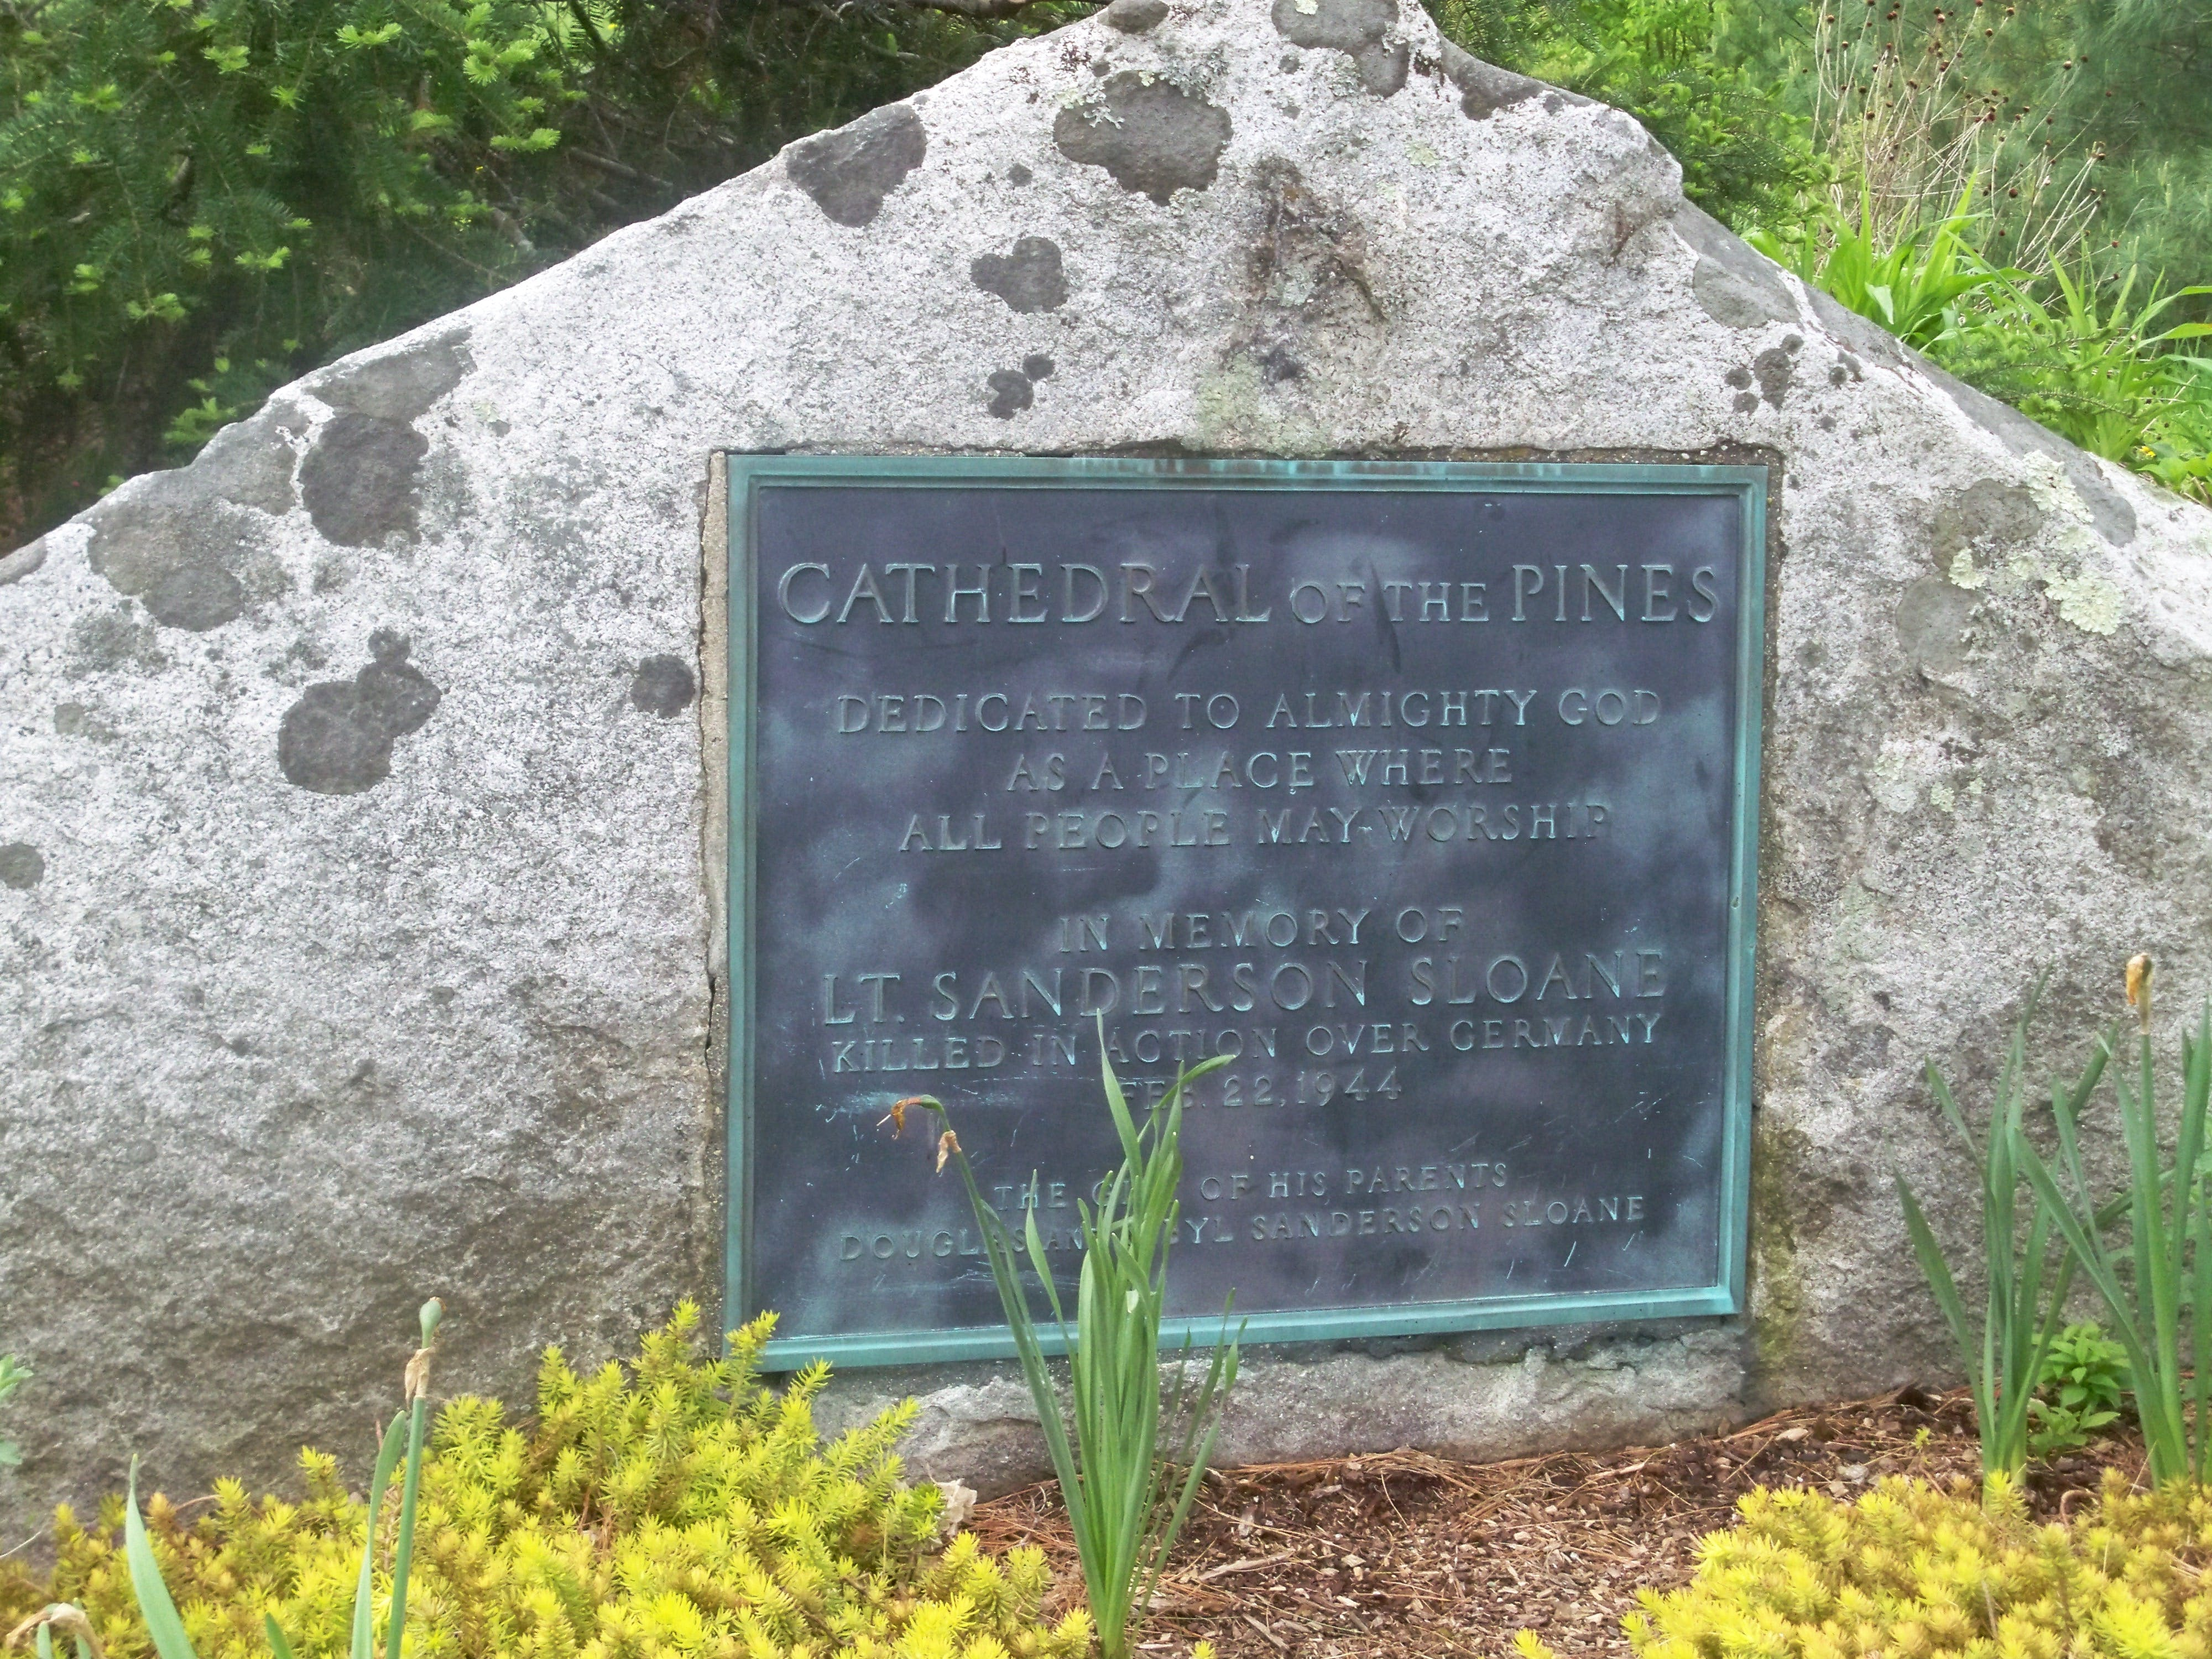 Visit Cathedral of the Pines